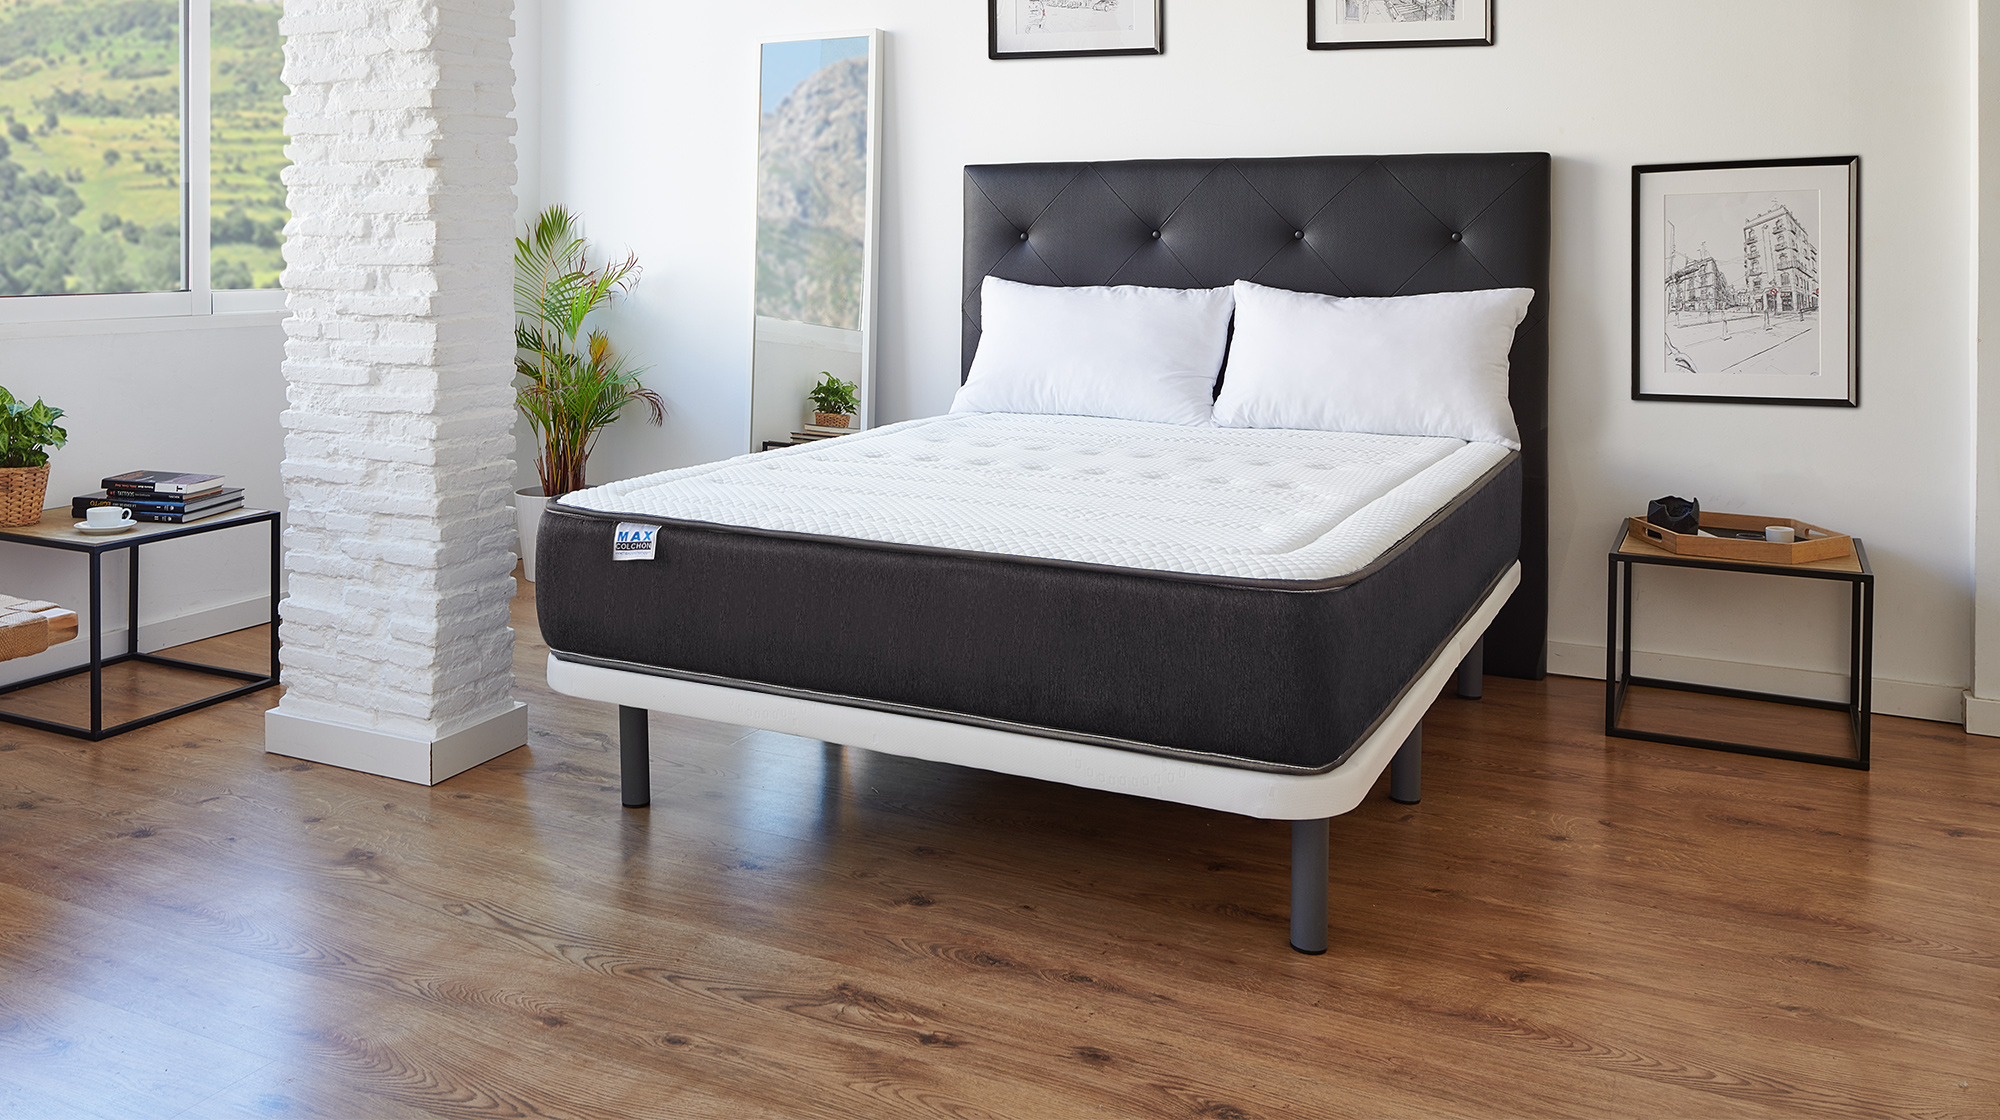 pack matelas confort visco sommier tapissier oreiller maxcolchon. Black Bedroom Furniture Sets. Home Design Ideas